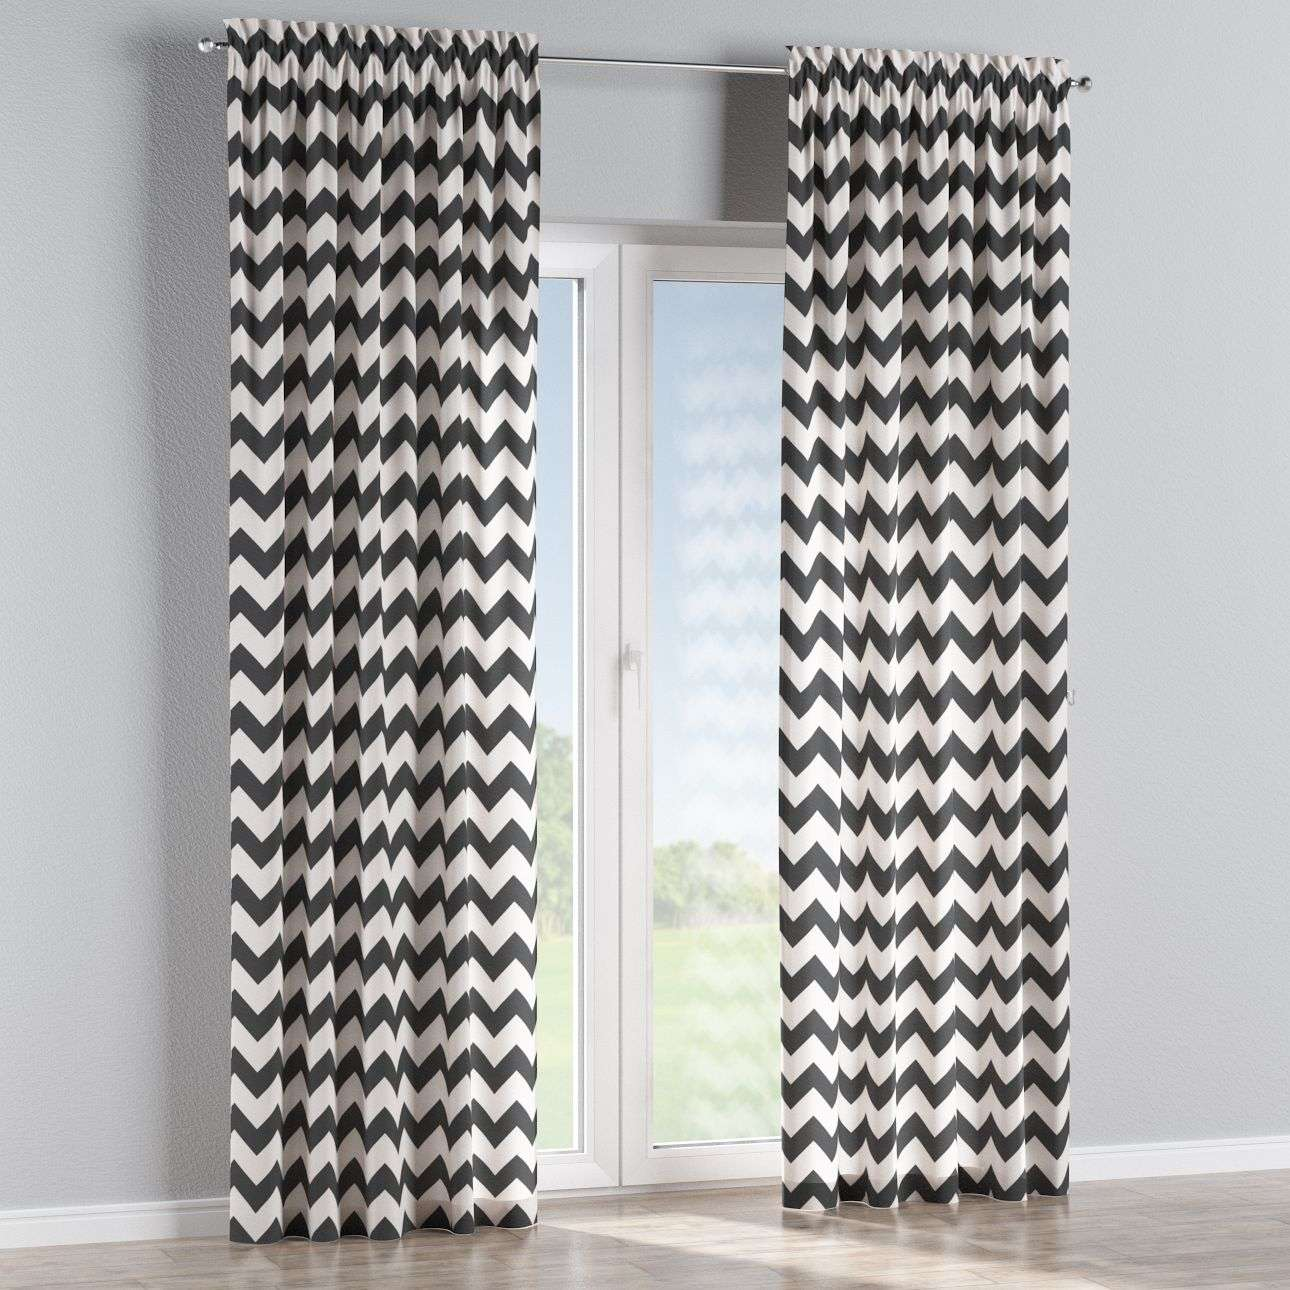 Slot and frill curtains 130 × 260 cm (51 × 102 inch) in collection Comics/Geometrical, fabric: 135-02